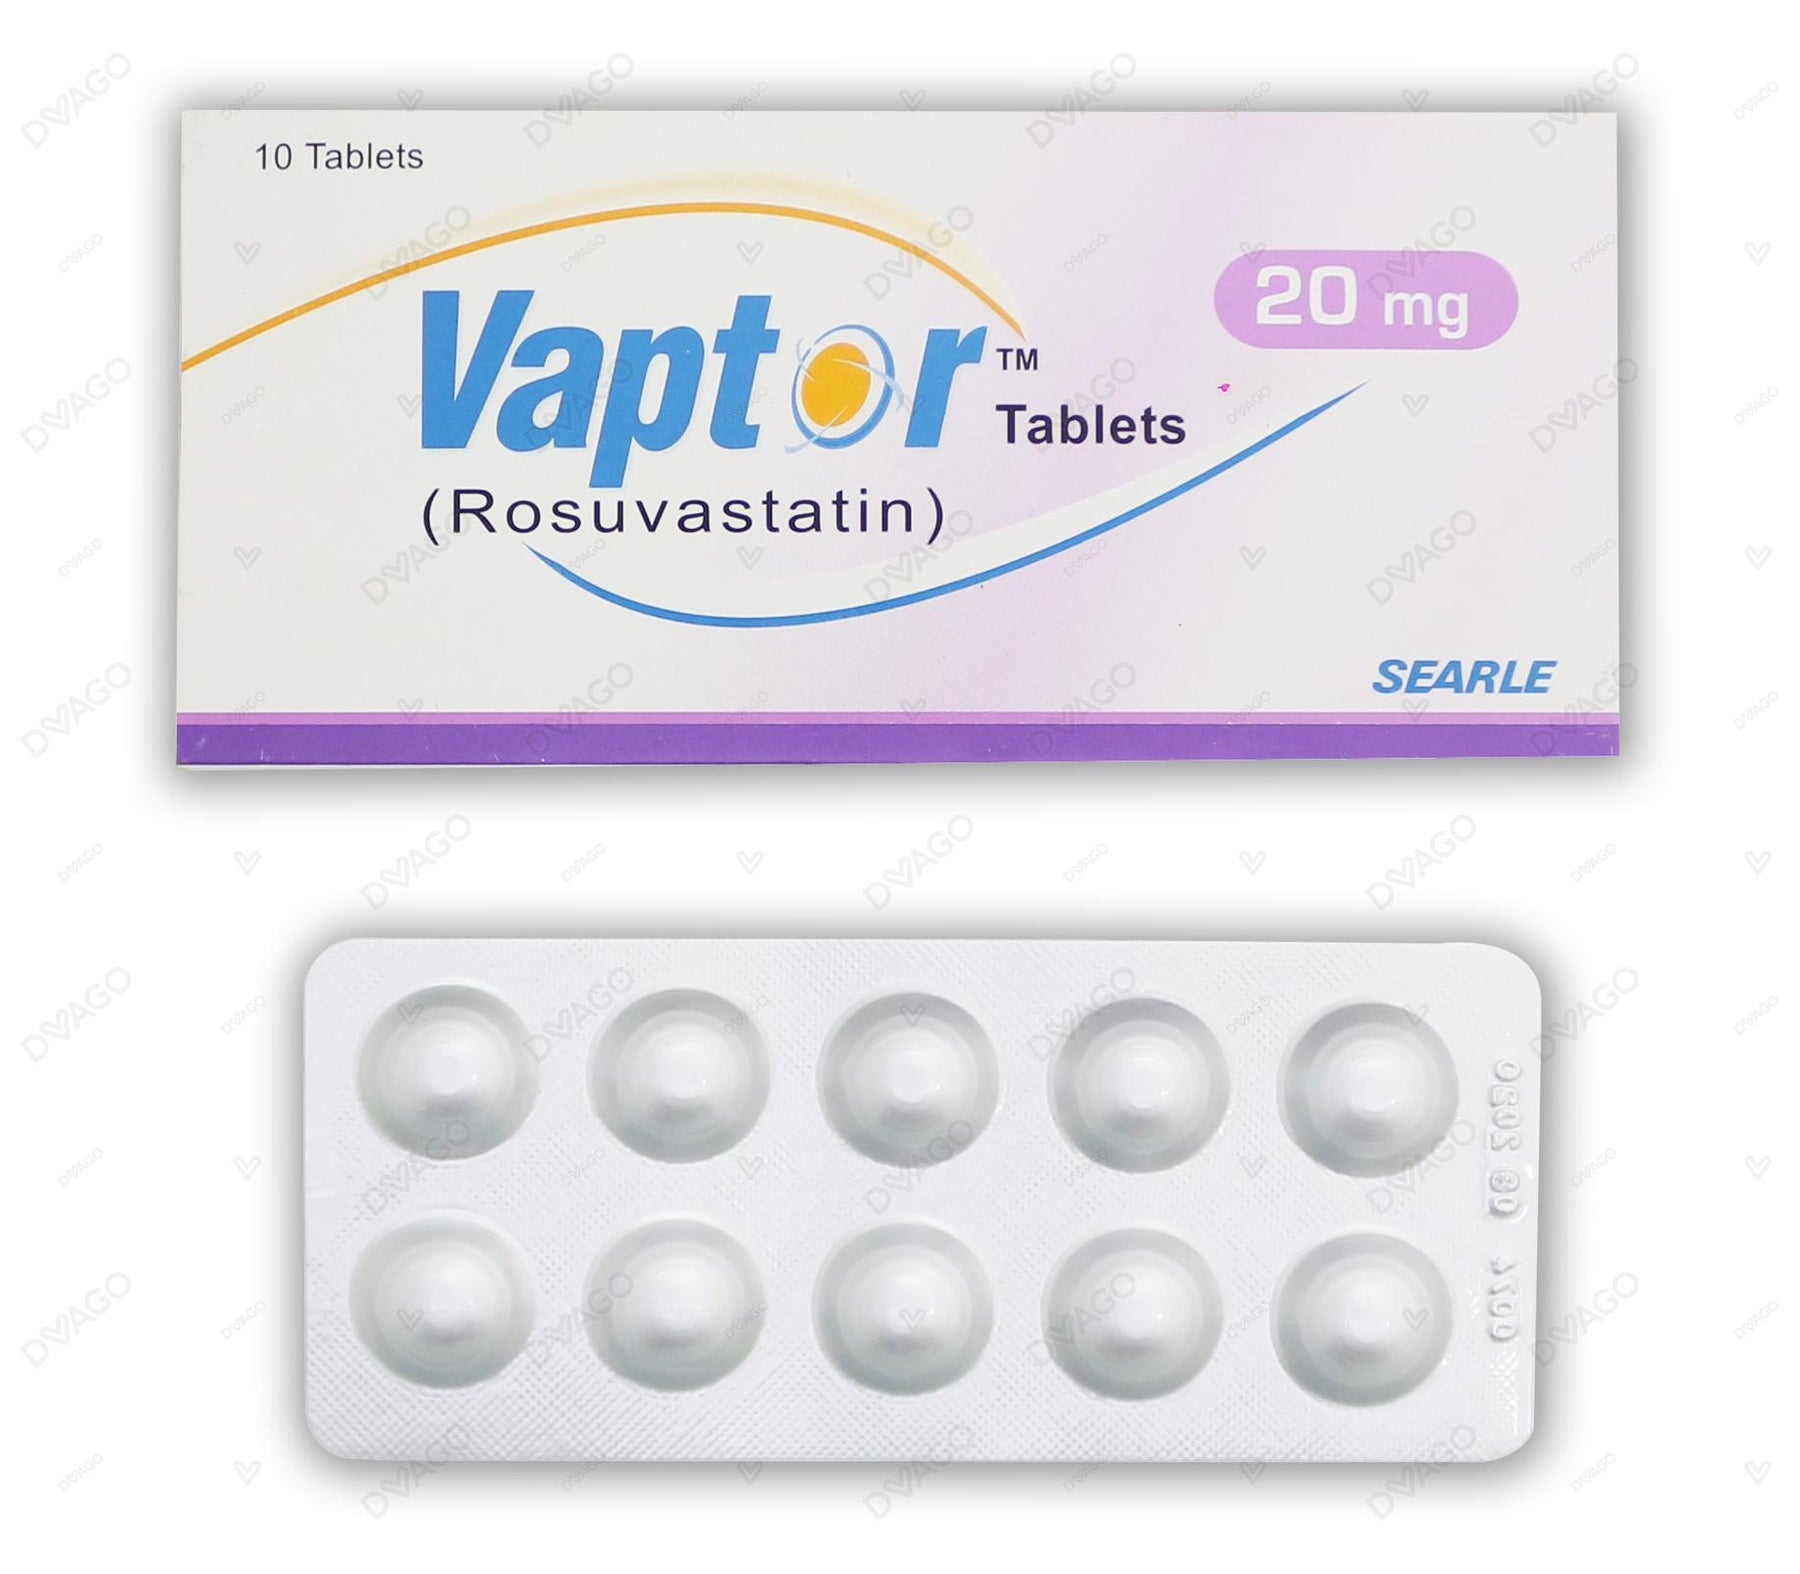 Vaptor Tablets 20mg 10's